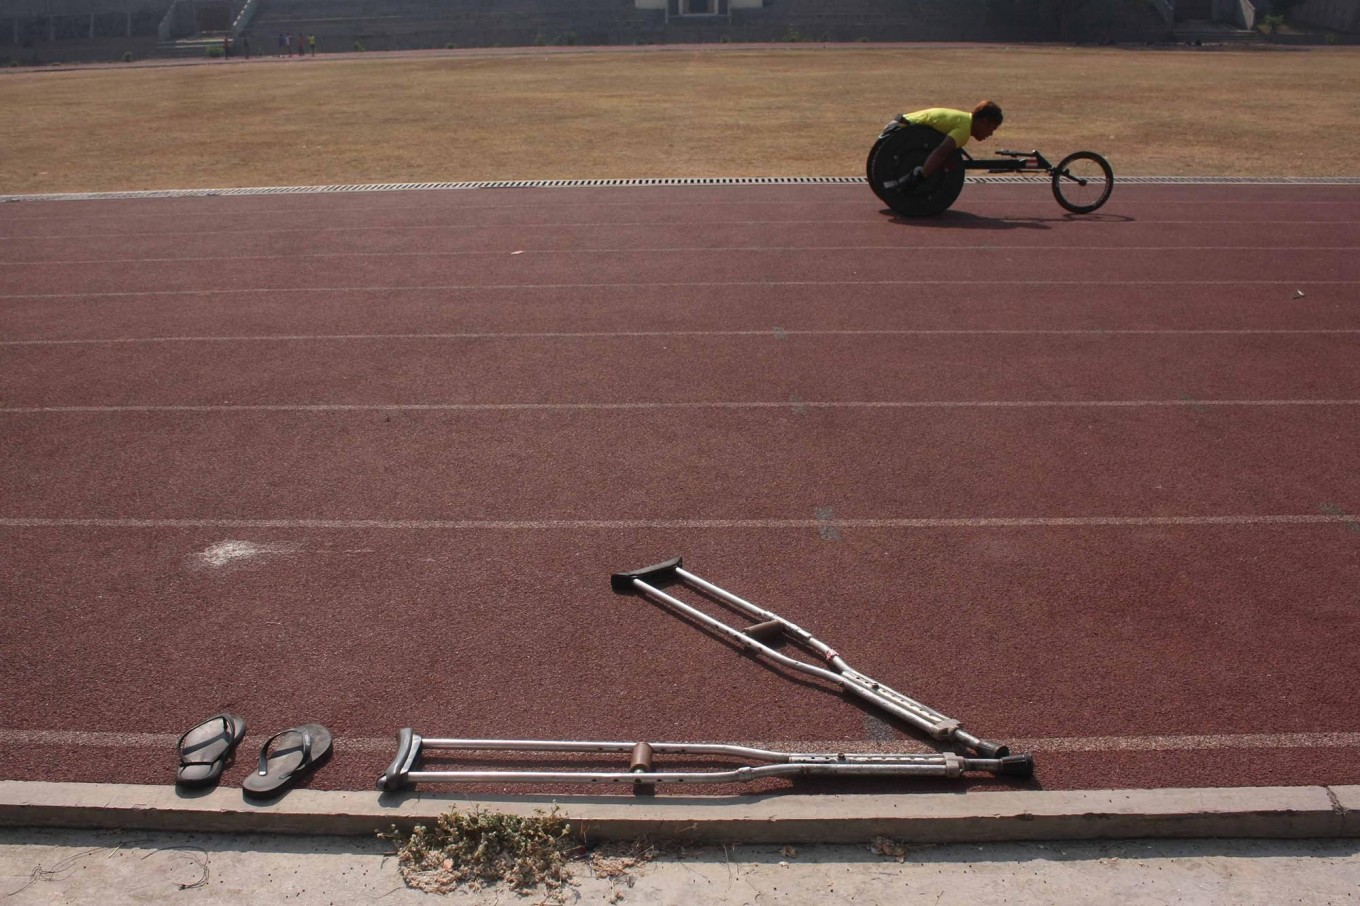 Crutches lie discarded alongside a track as a track-and- field athlete trains for the wheelchair race. JP/Maksum Nur Fauzan